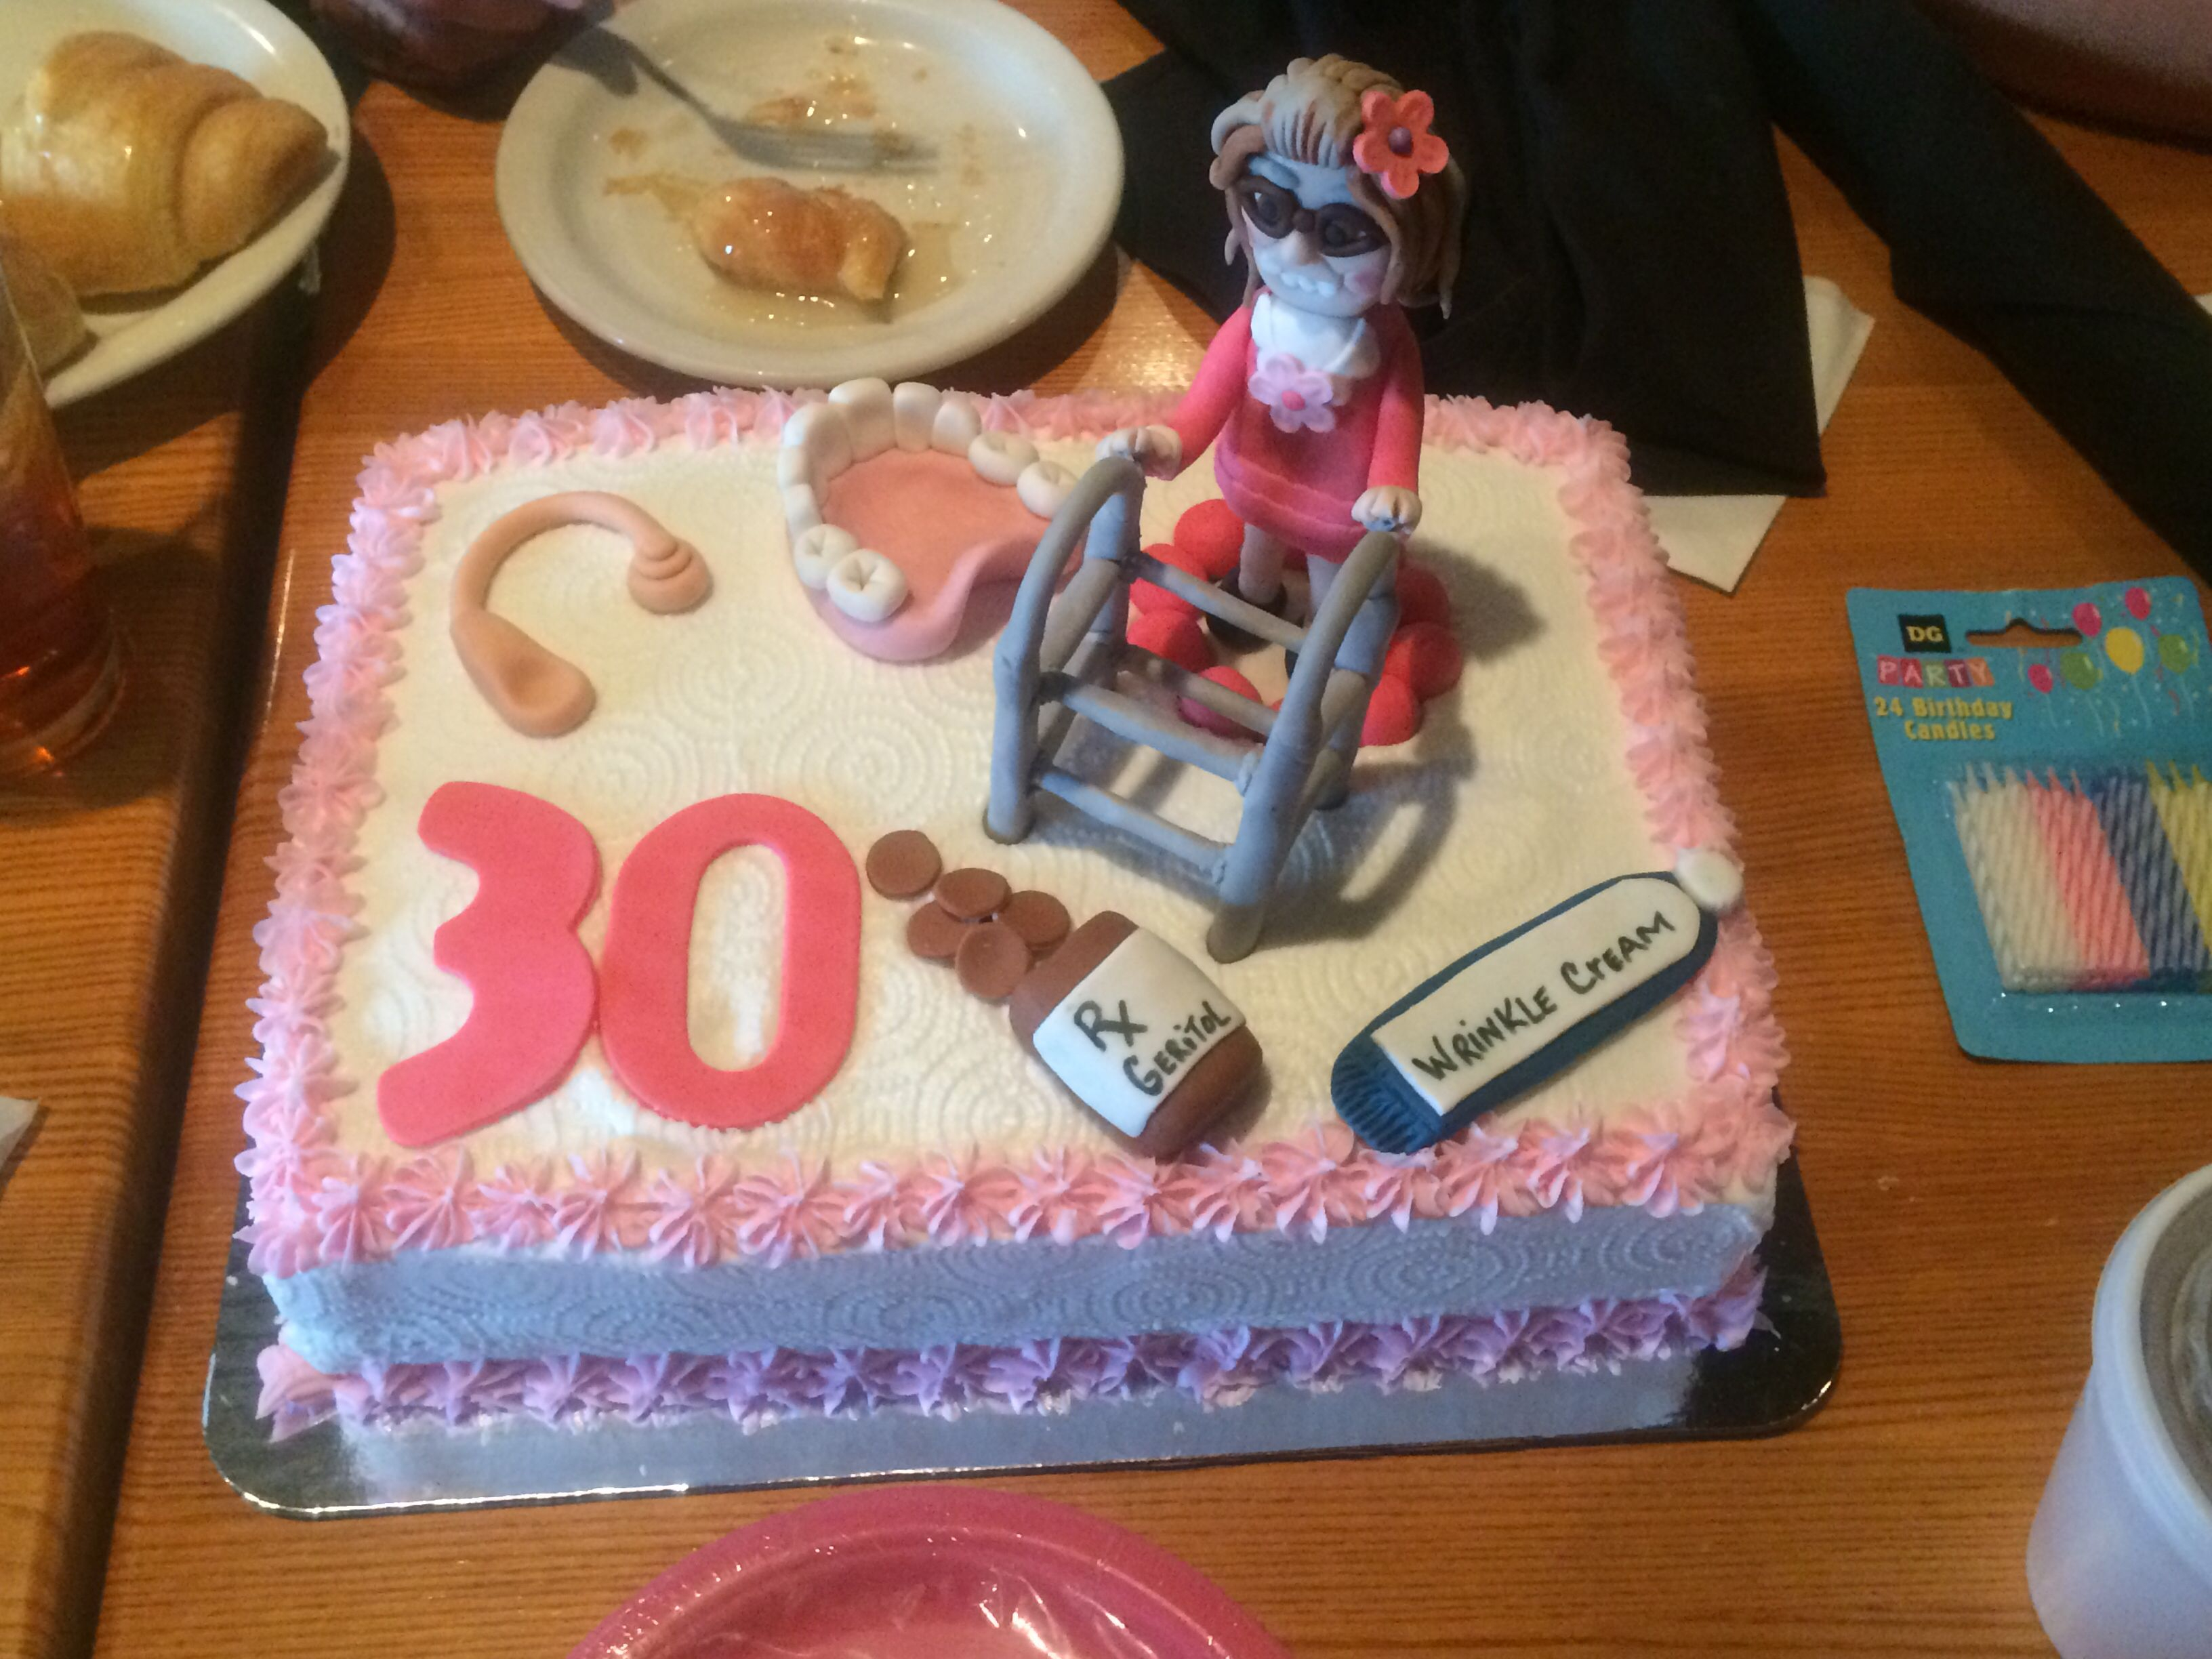 Birthday Cake Funny Happy 30th Birthday Cutest Cake Ever Old Lady Cake Funny Cake